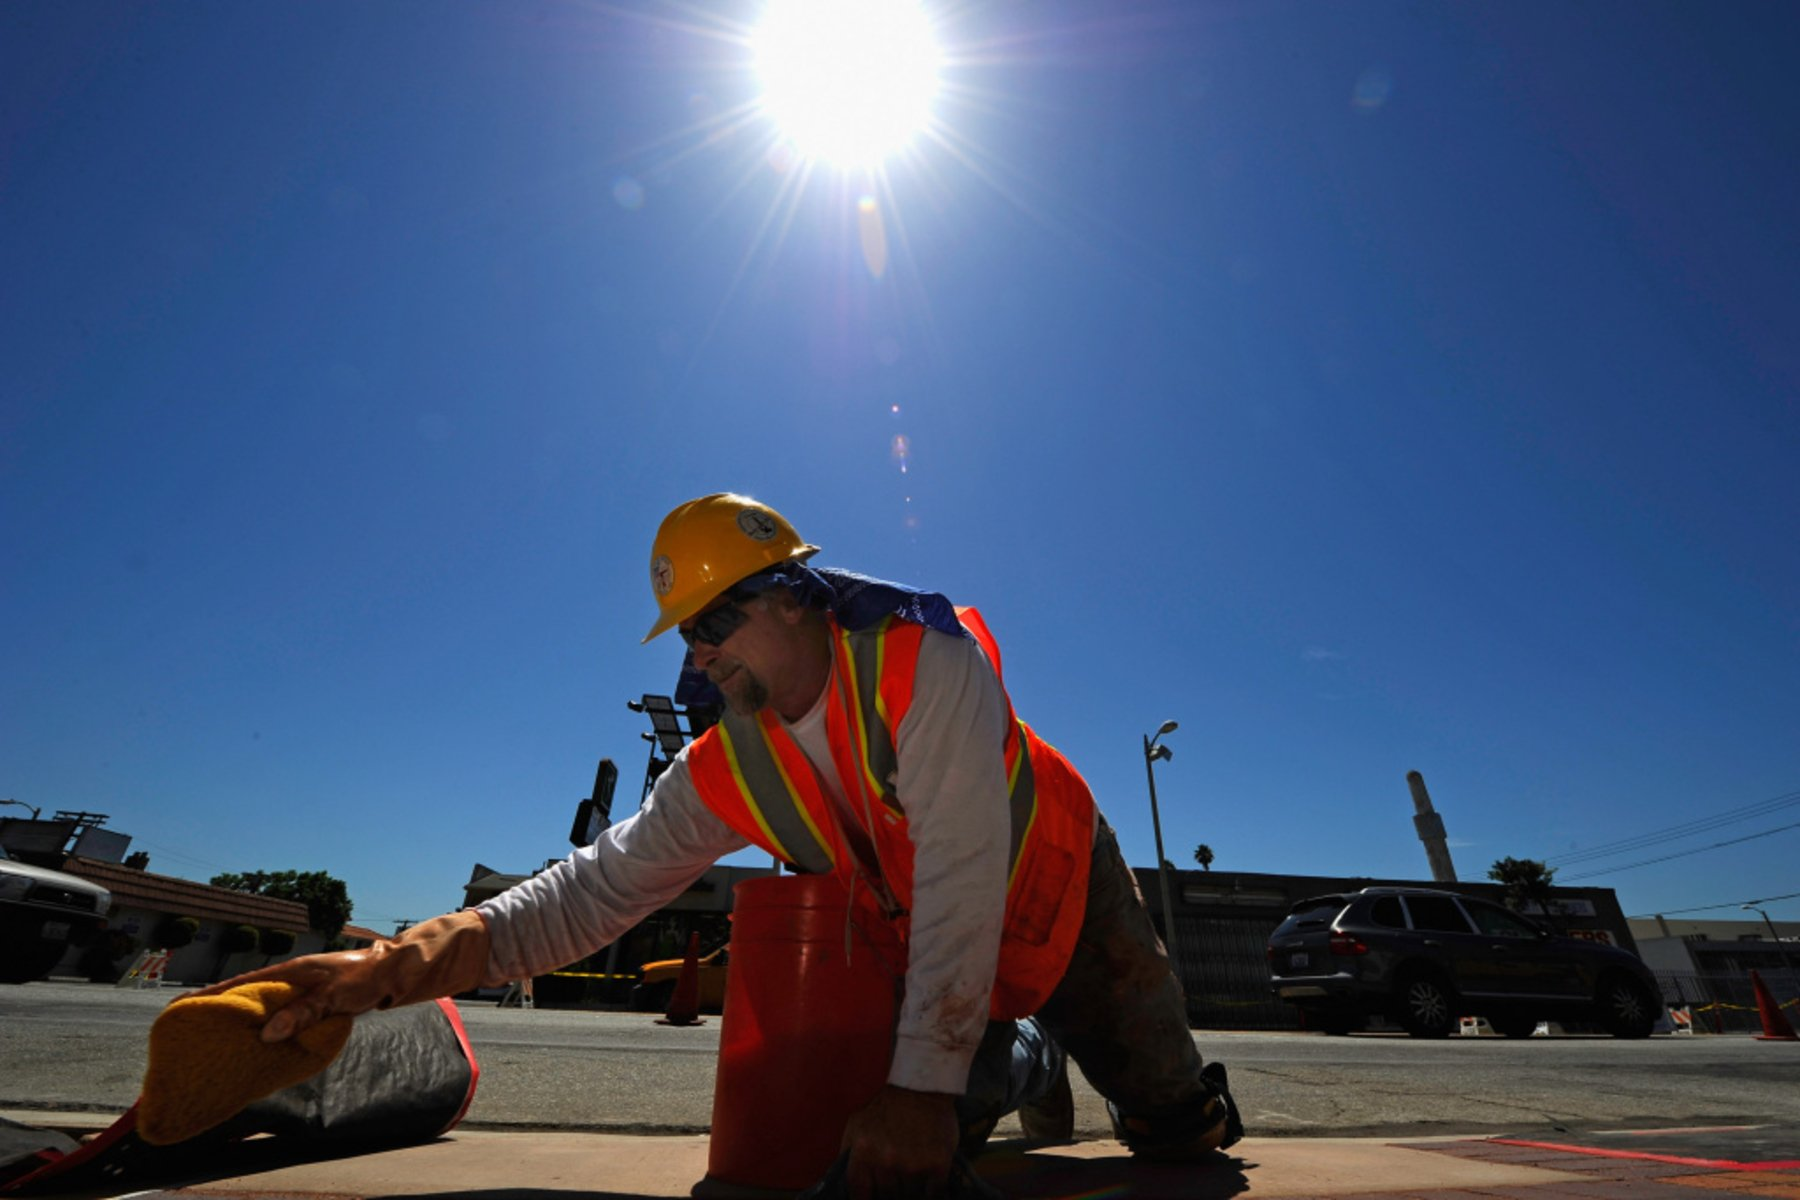 Health & Safety Tips for Working in Summer Heat